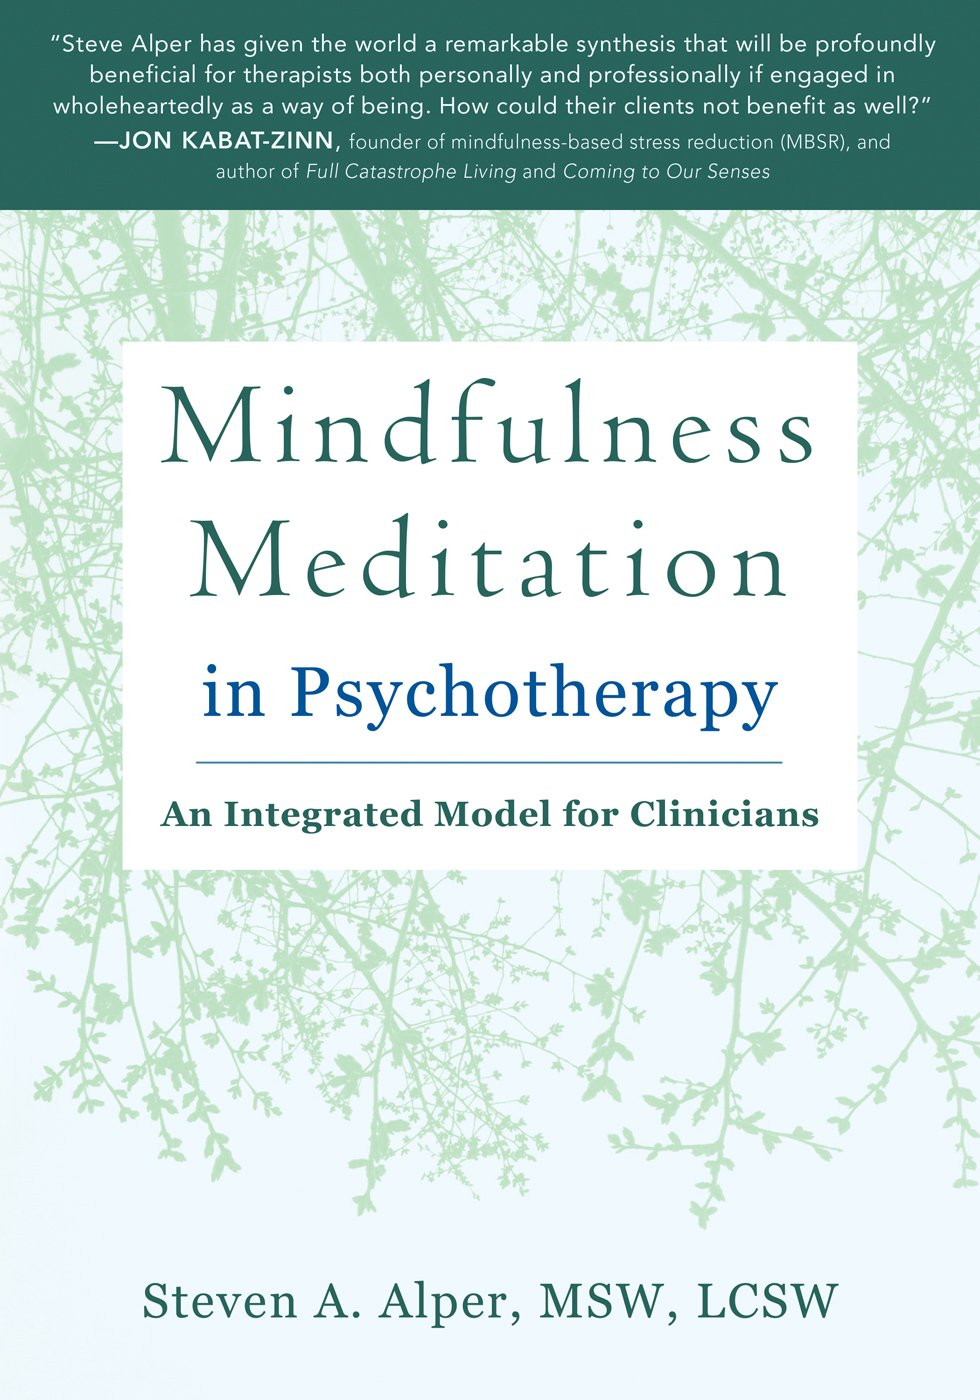 Mindfulness meditation in psychotherapy an integrated model for mindfulness meditation in psychotherapy an integrated model for clinicians steven a alper msw lcsw 9781626252752 amazon books fandeluxe Choice Image